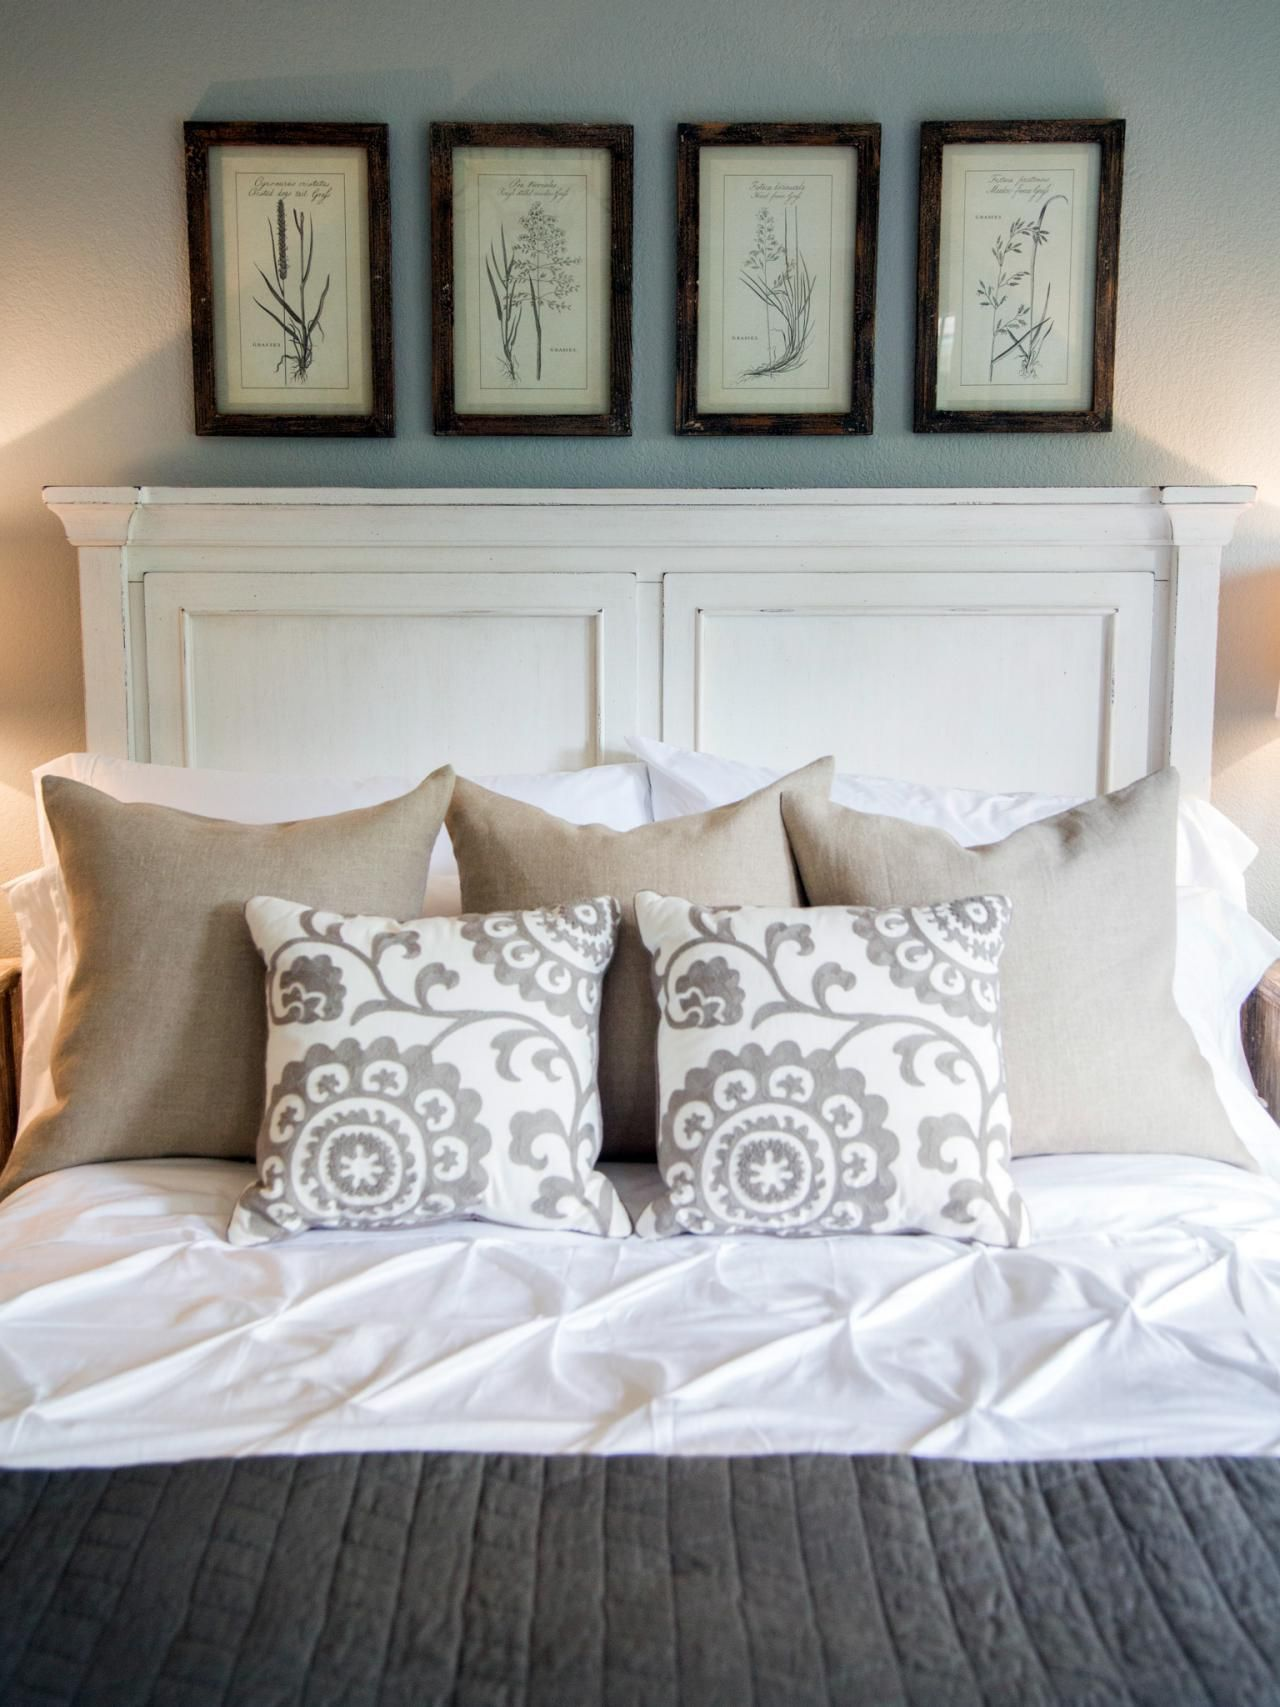 Fixer upper yours mine ours and a home on the river - Joanna gaines bedding ideas ...